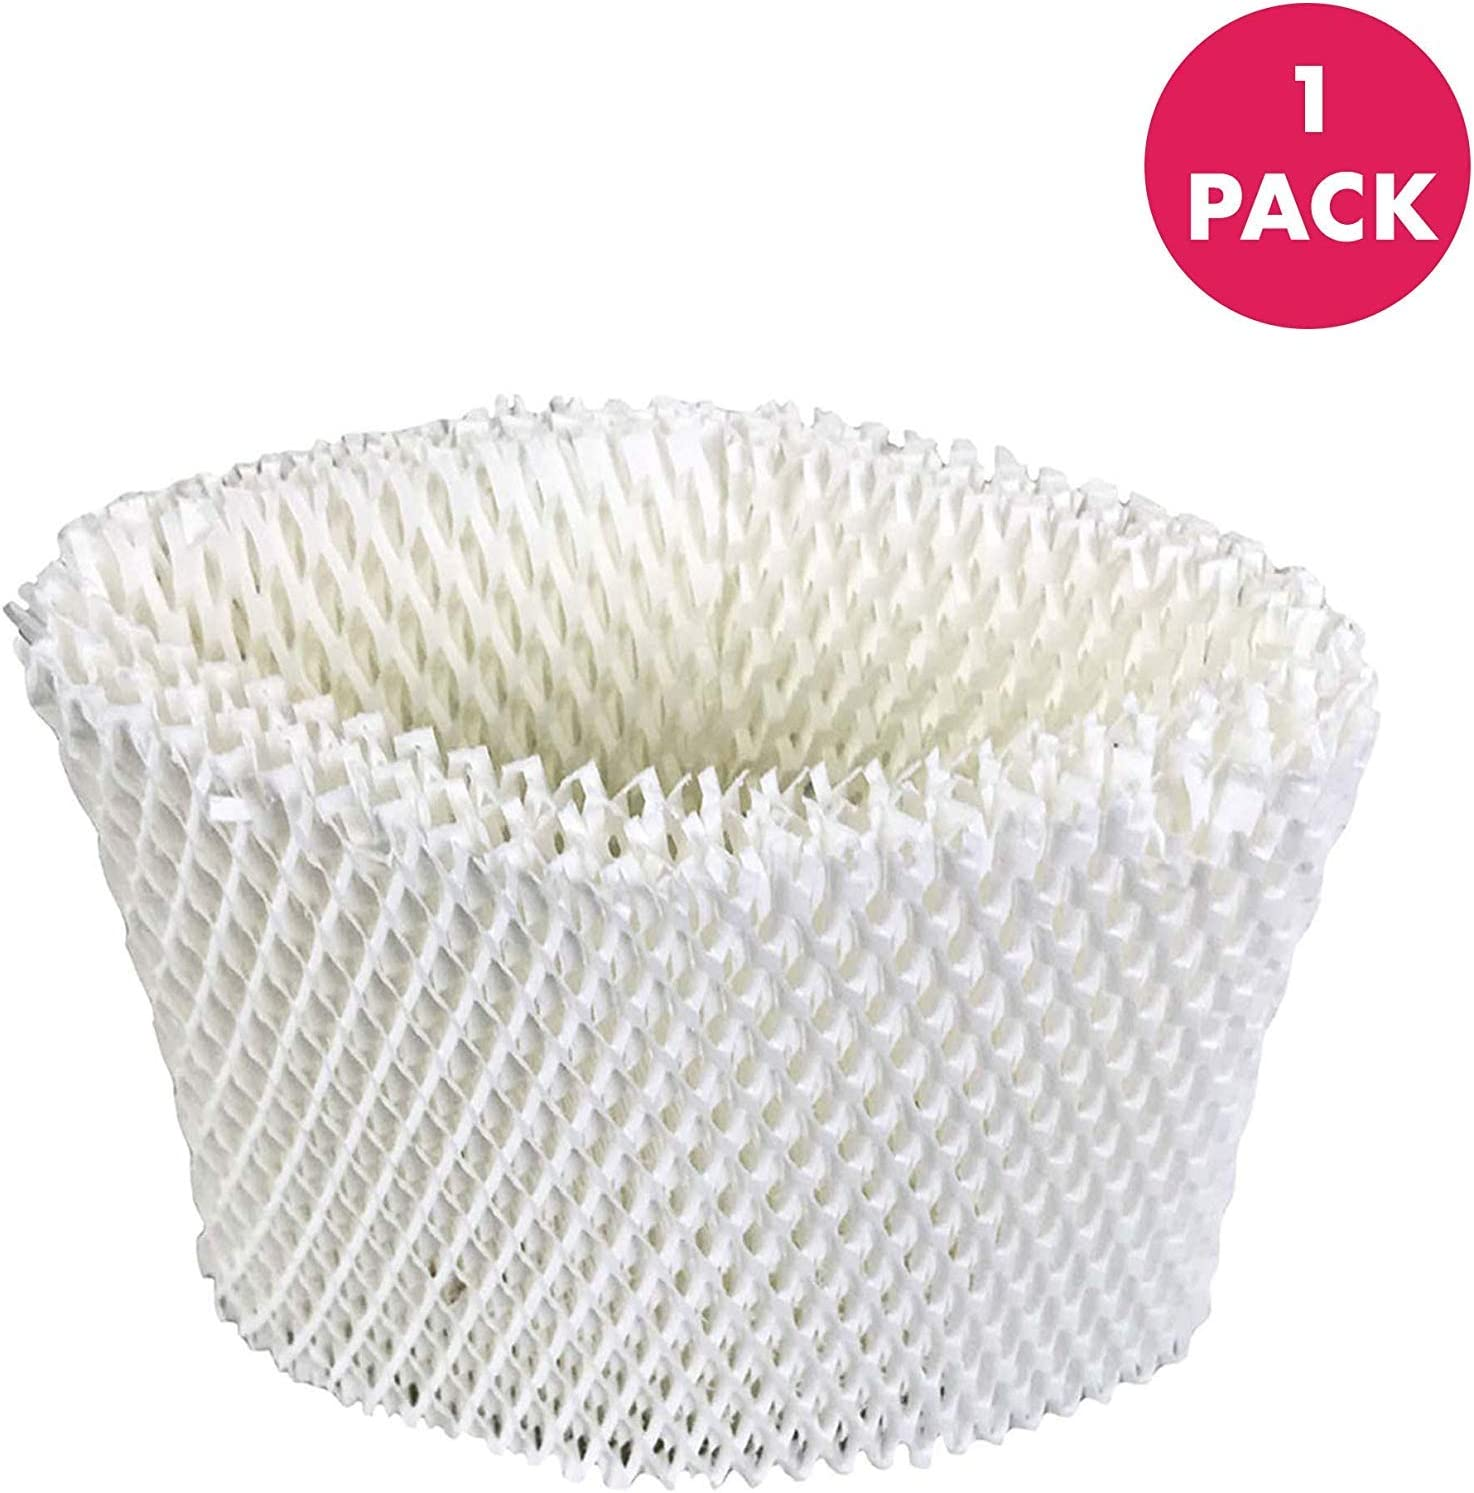 1 Pc Humidifier Filter For Honeywell Vicks & Kaz WF2 HCM 350 Series Vicks Parts